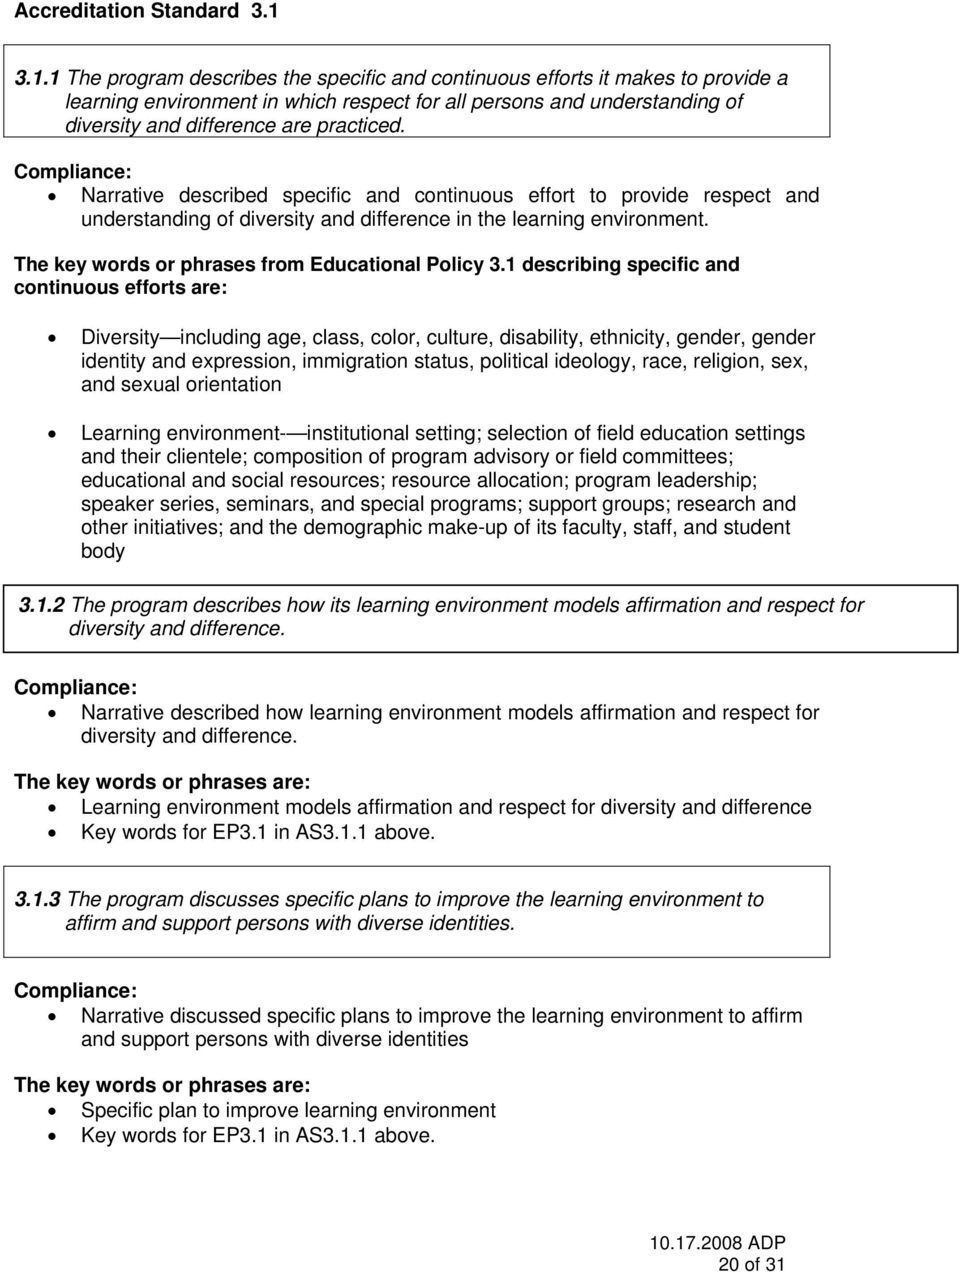 Narrative described specific and continuous effort to provide respect and understanding of diversity and difference in the learning environment. The key words or phrases from Educational Policy 3.